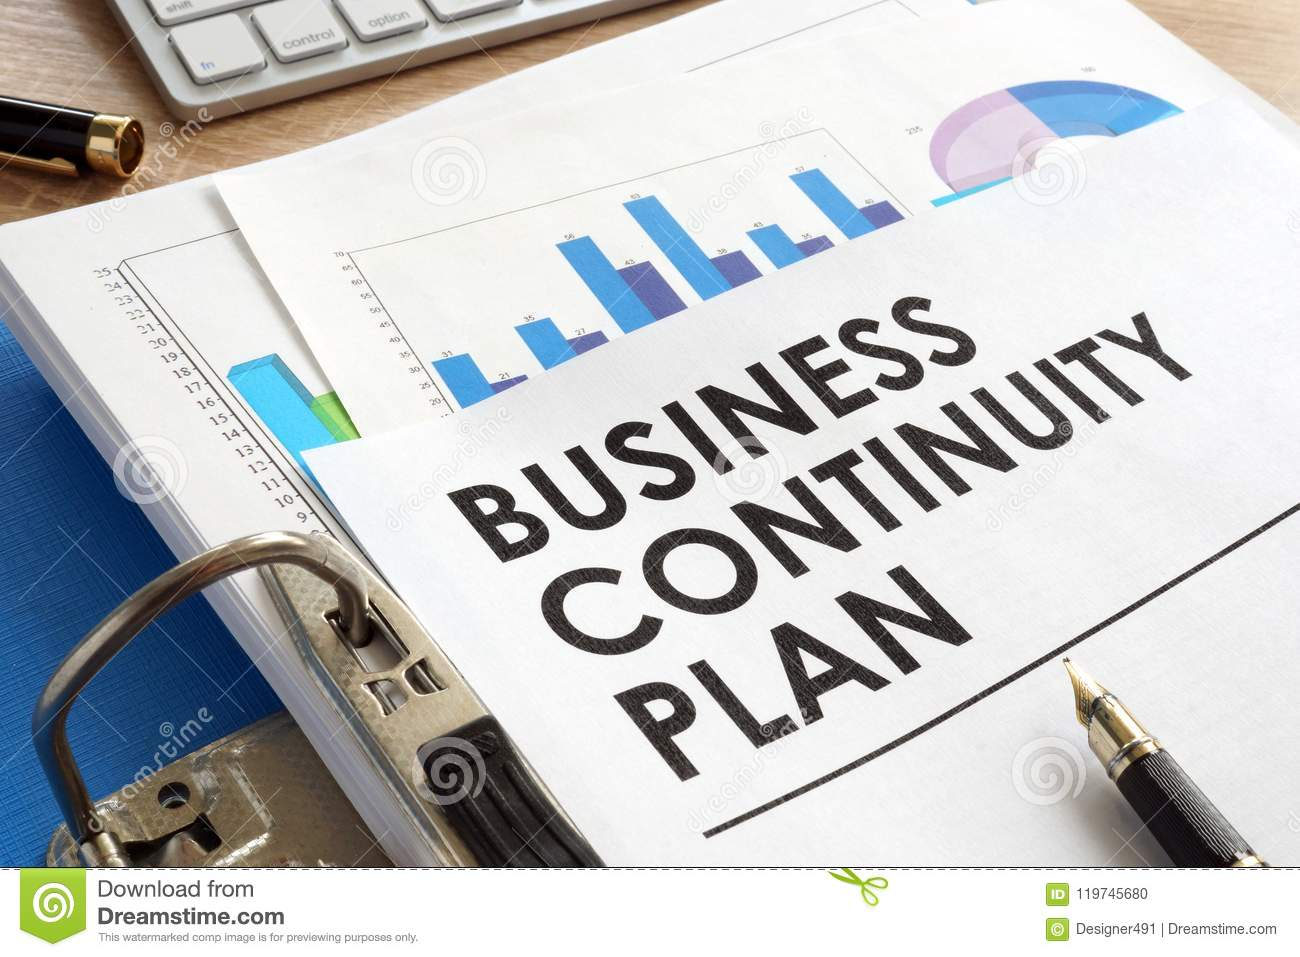 Business Continuity Plan In A Folder Stock Photo